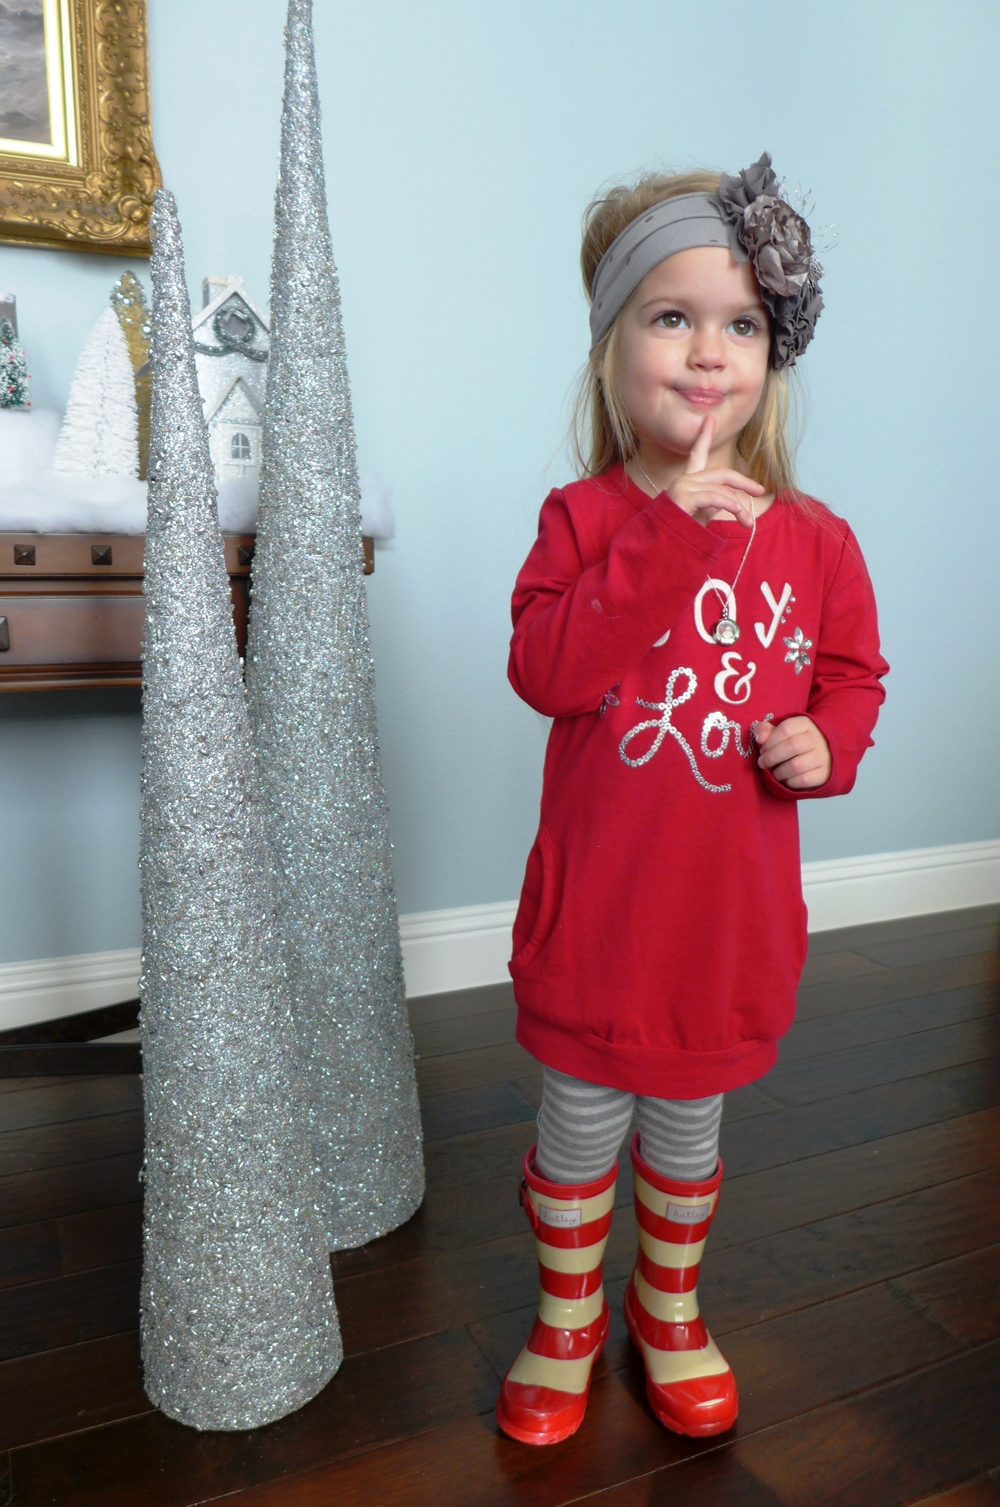 Gymboree Sweatshirt from Joyful Holiday   Gymboree Reindeer Fair Isle Tights  Hatley Red Stripe Rain Boots  Headband: Persnickety Zaya Grey Dot (Fall 12)  Necklace:  Origami Owl Mini Living Locket